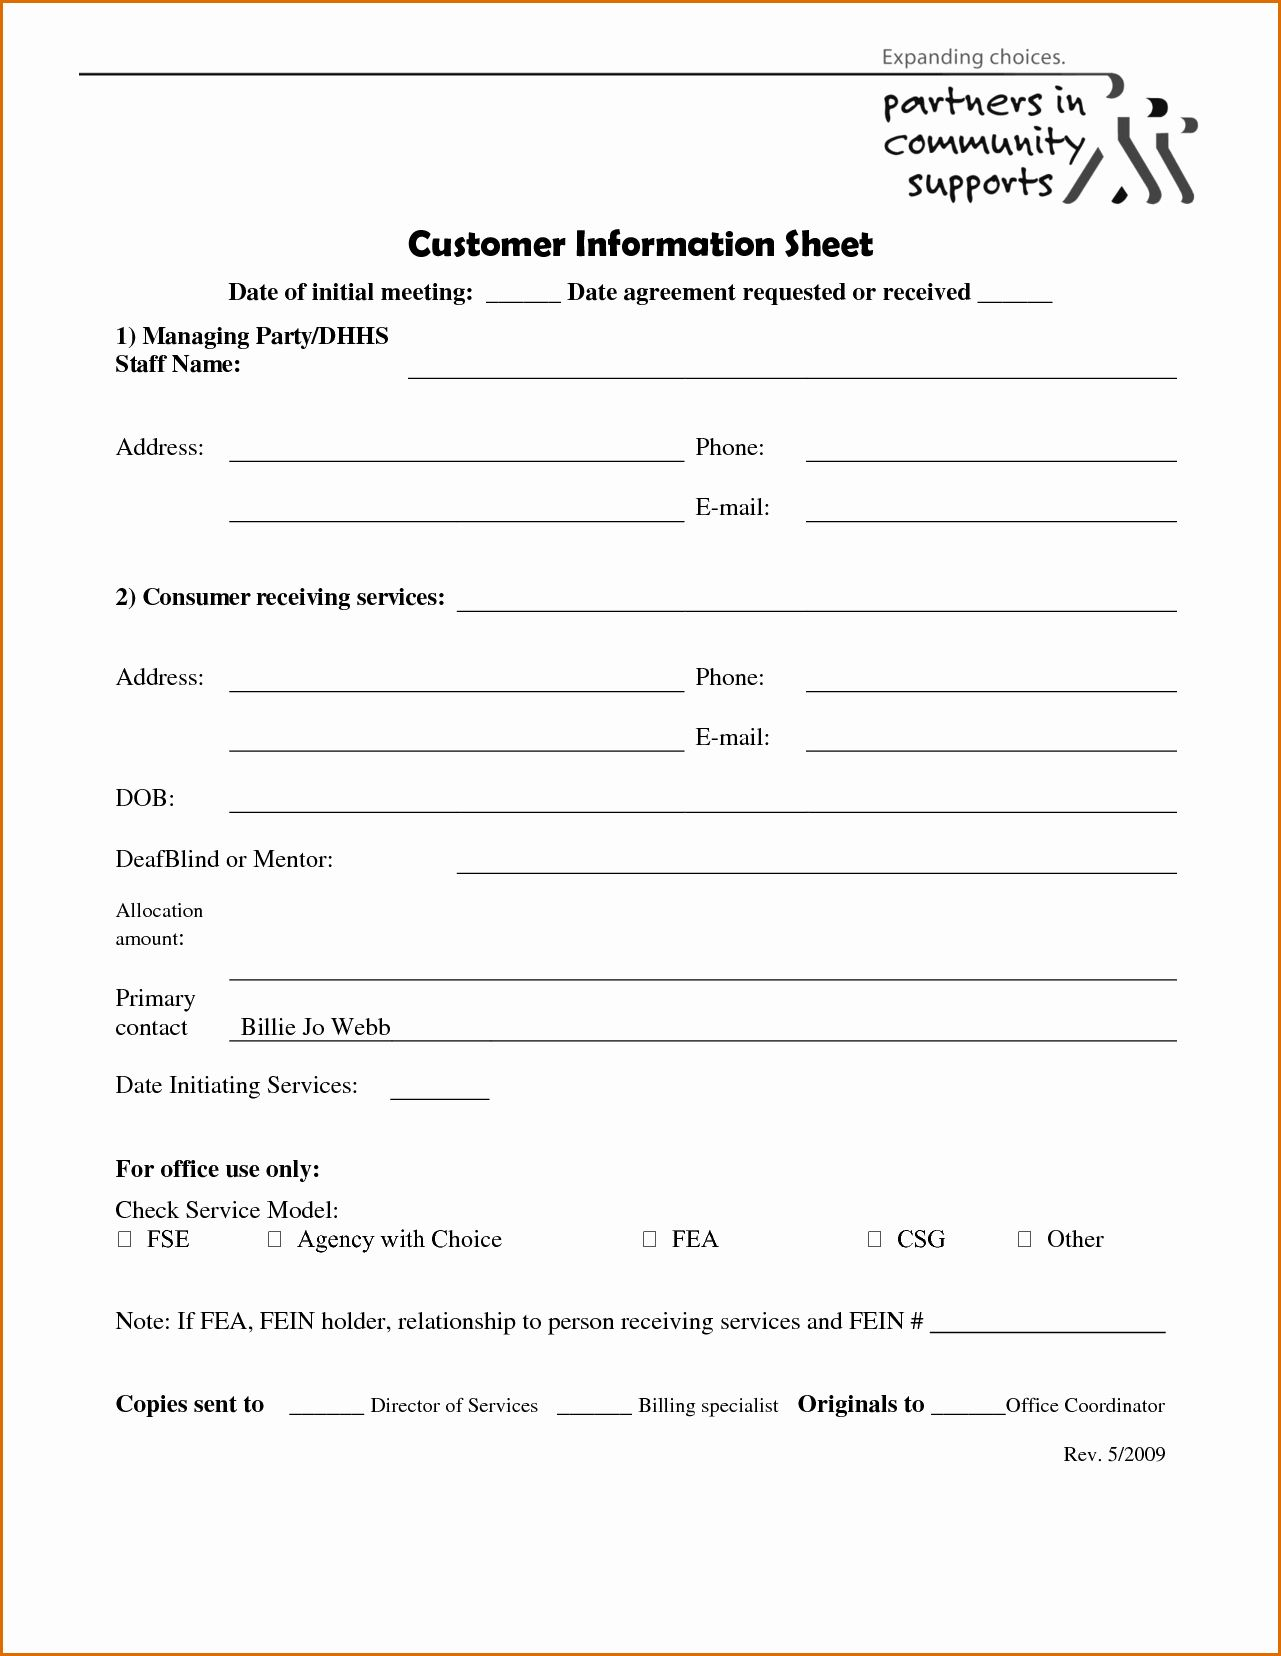 Customer Information Card Template Unique 5 Client Information Sheet Templates Card Template Questionnaire Template